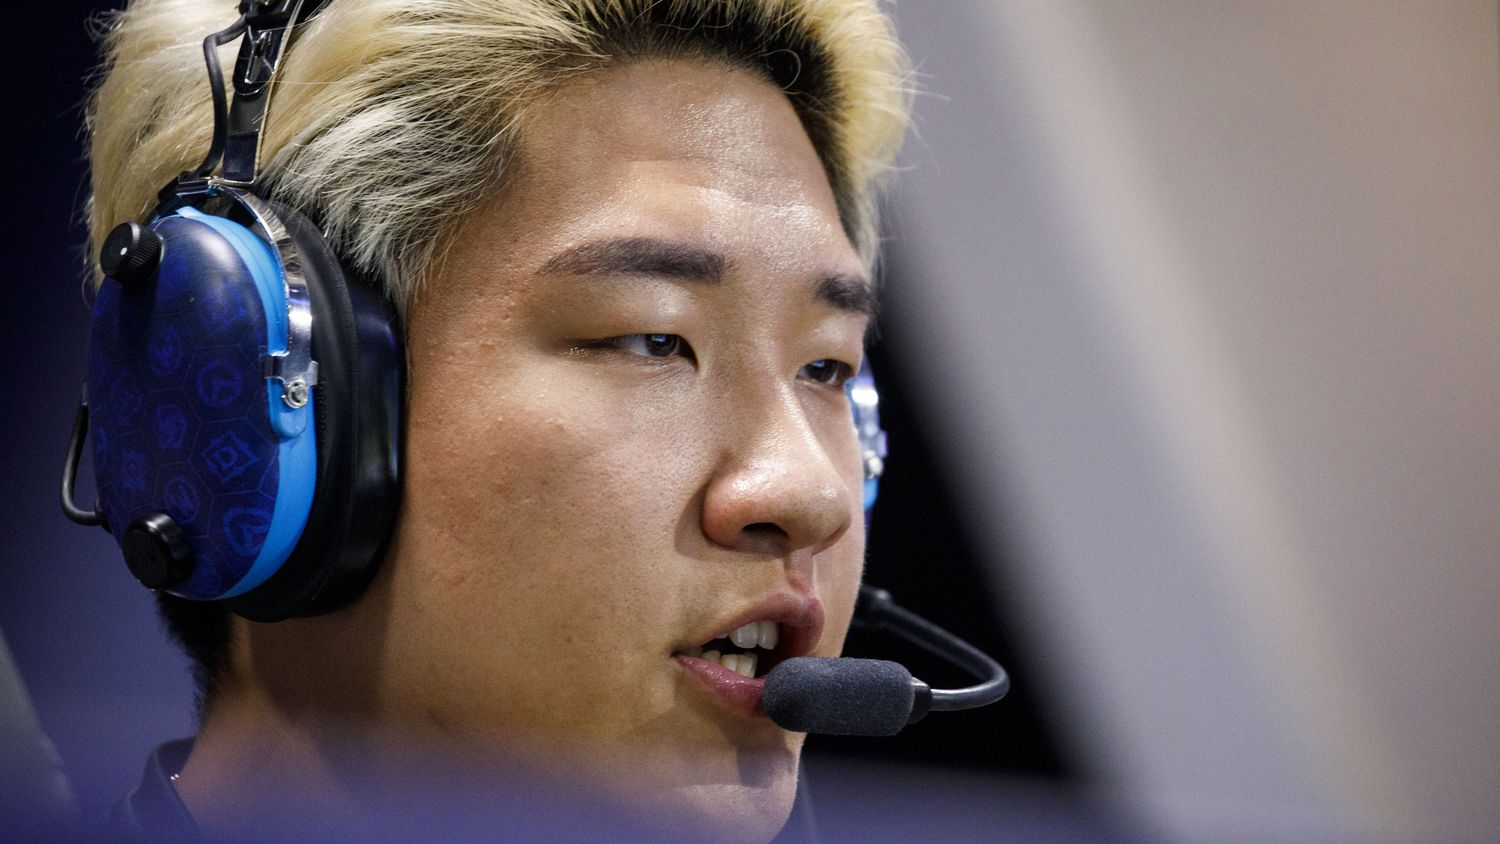 """Minseok Son - """"Oge"""" during the Overwatch League match between the Dallas Fuel and LA Gladiators on Friday, August 9, 2019 at Blizzard Arena in Burbank, CA."""